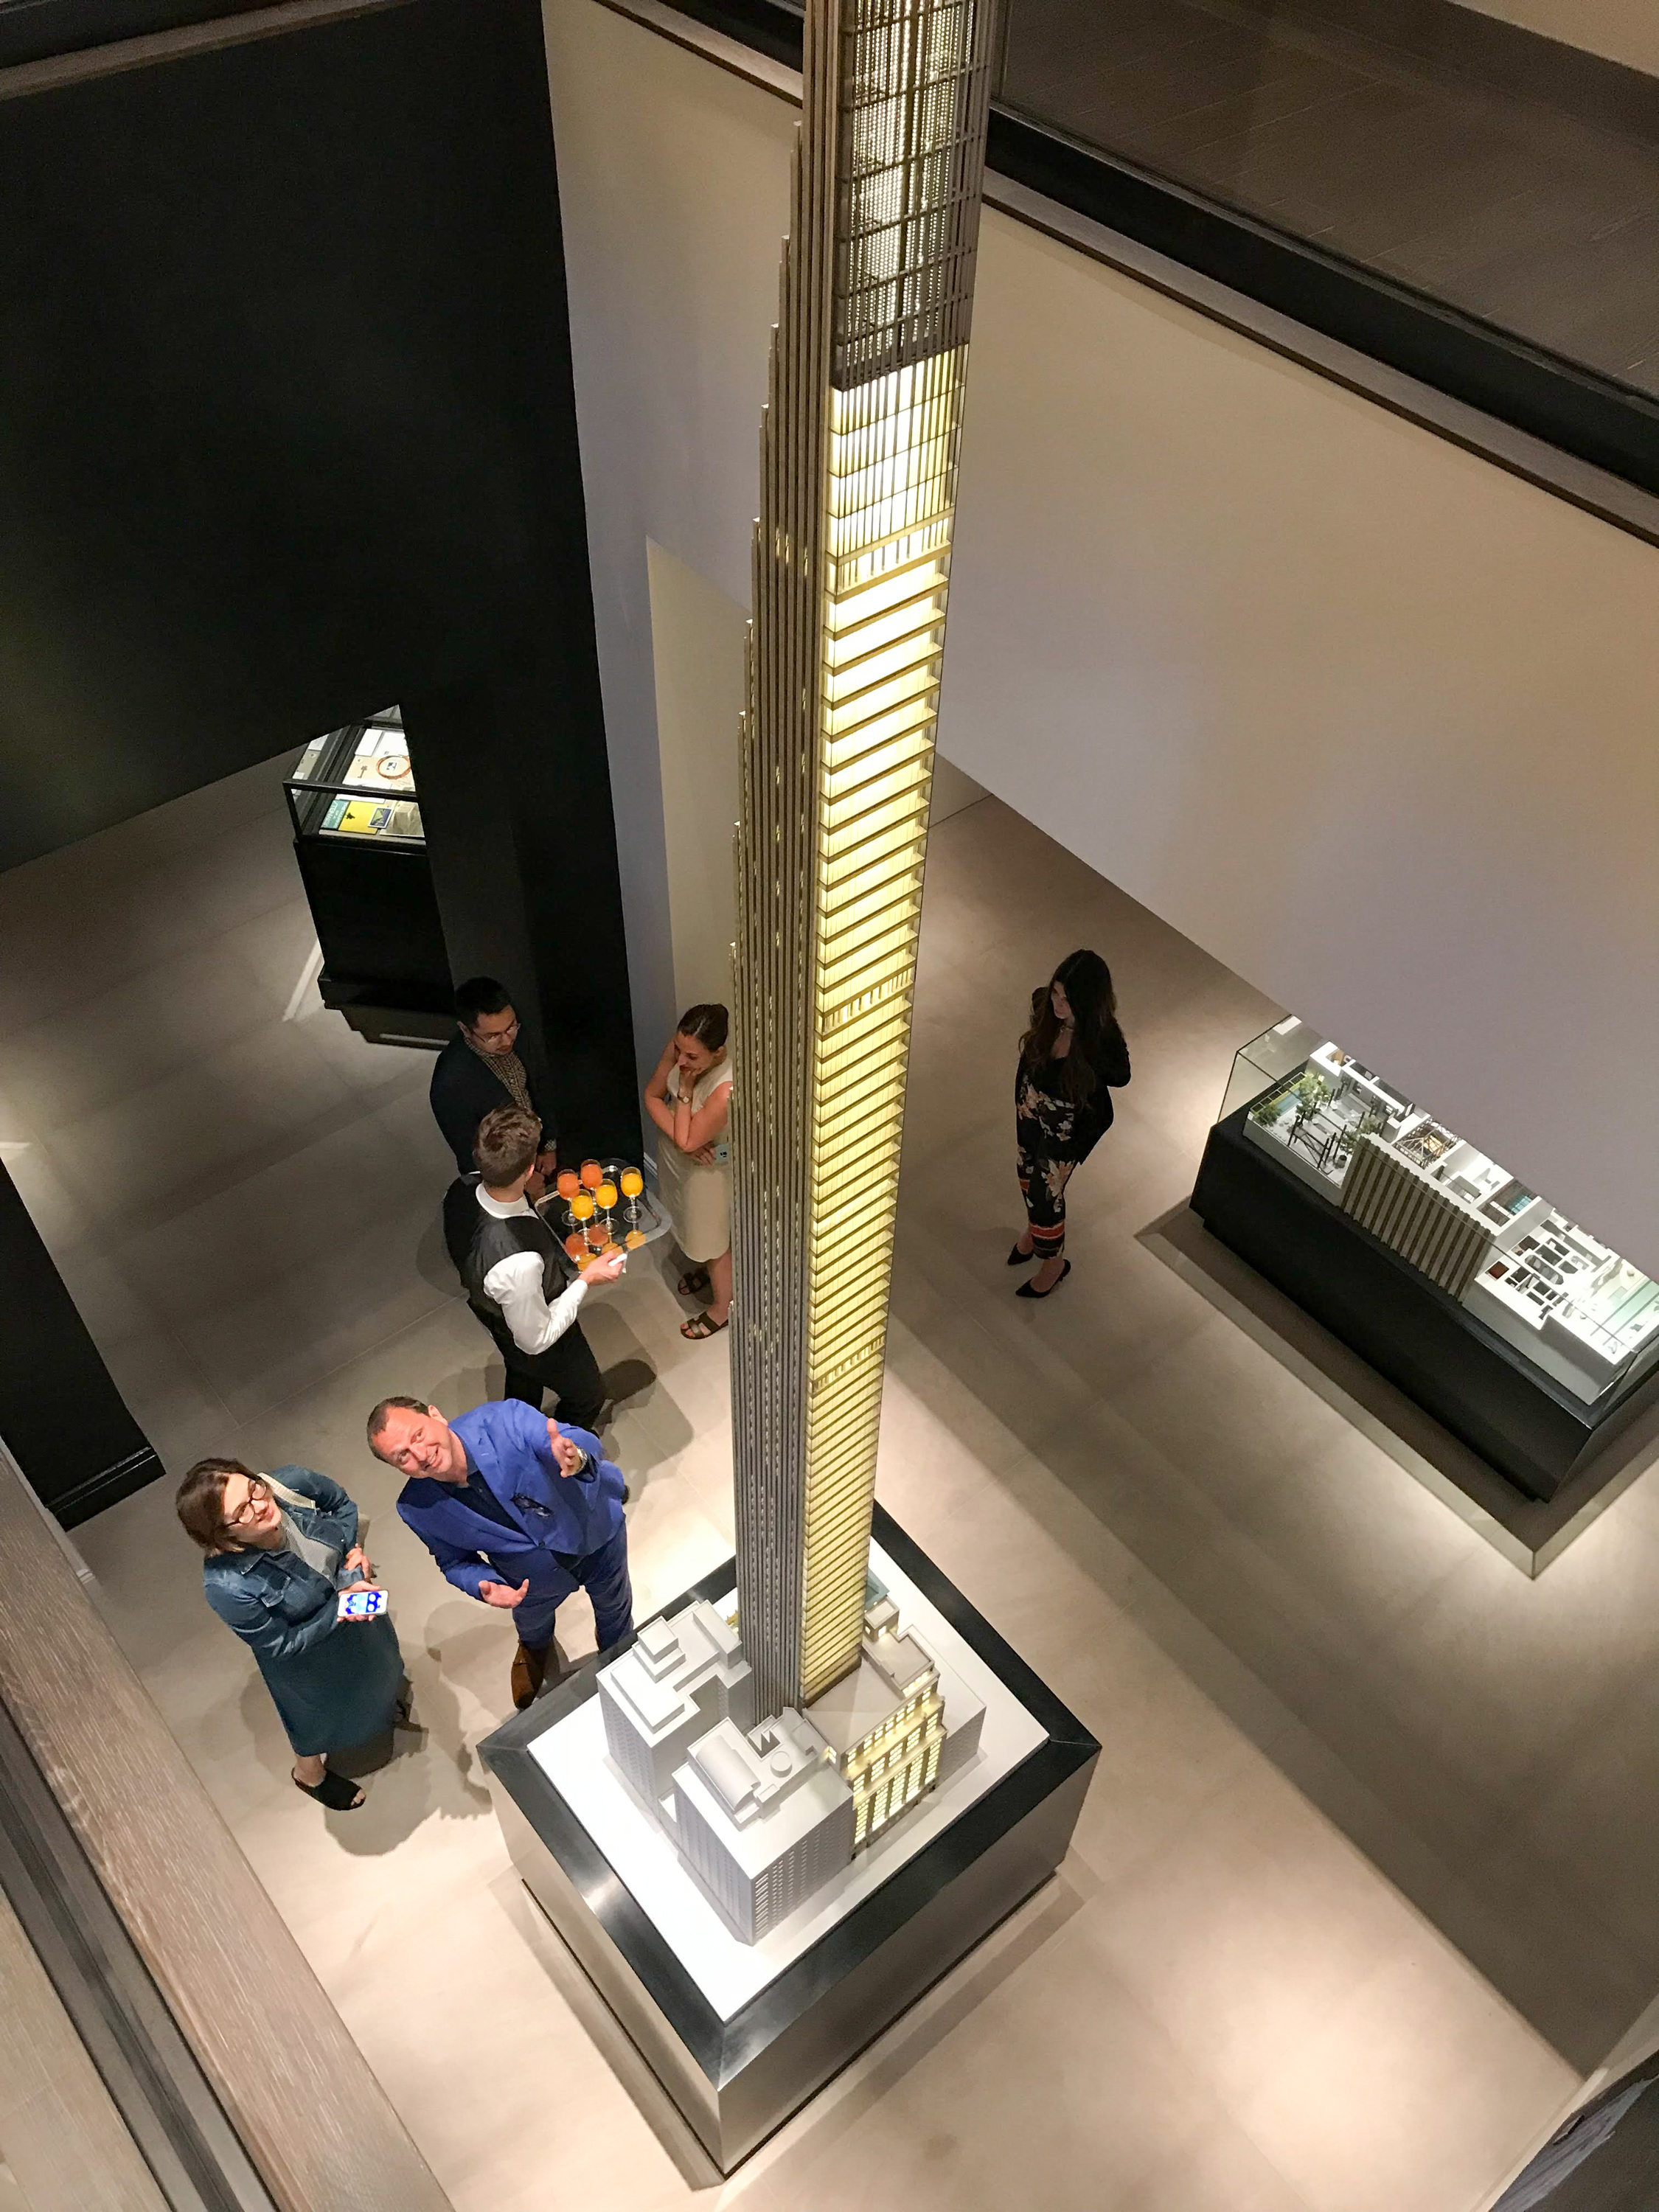 Scale Model of 111 West 57th Street with Gregg Pasquarelli at the base, image from the Sales Gallery